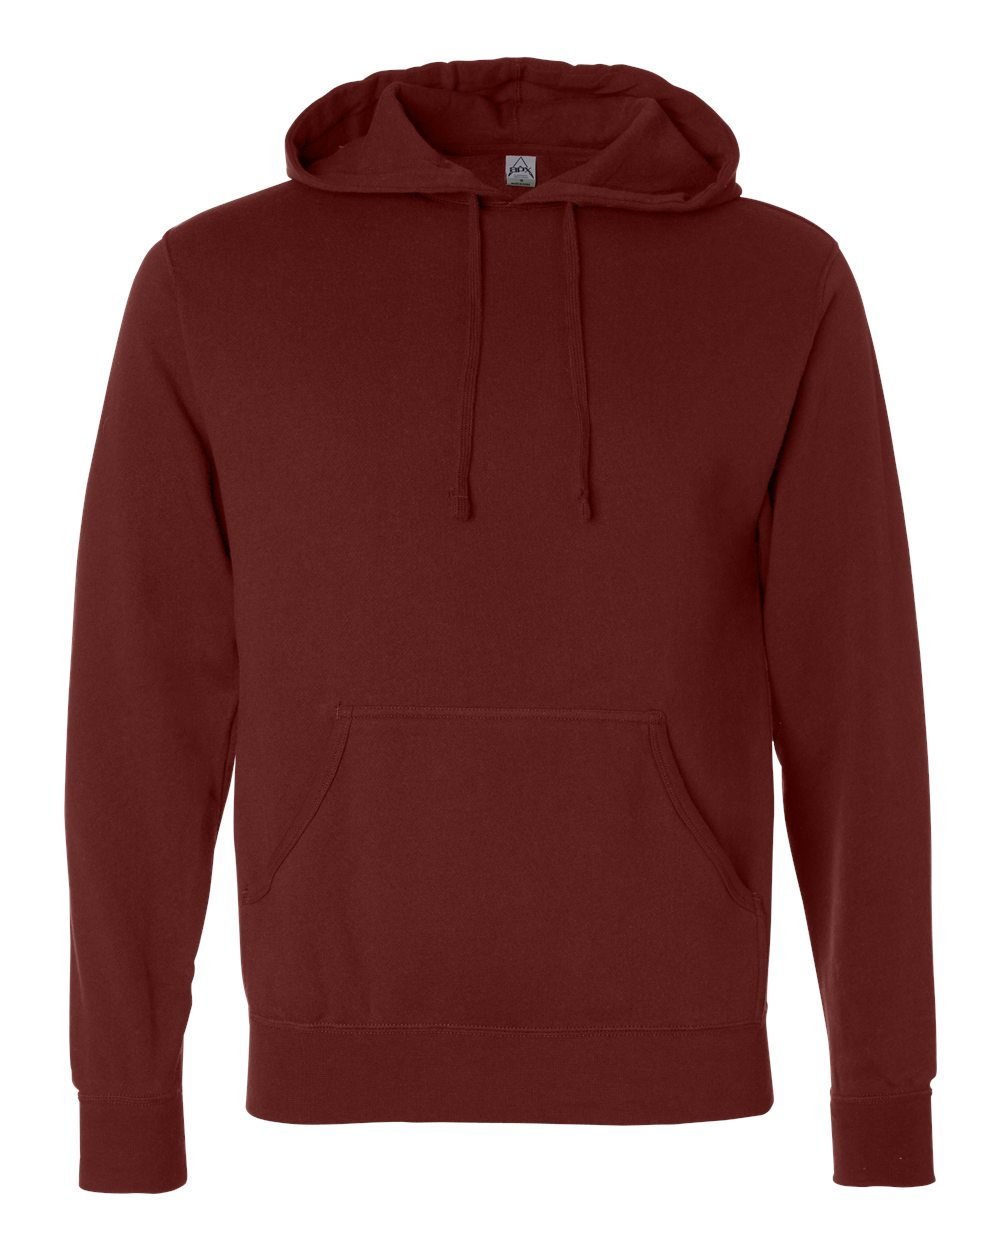 Independent_Trading_Co._AFX4000_Garnet_Front_High.jpg